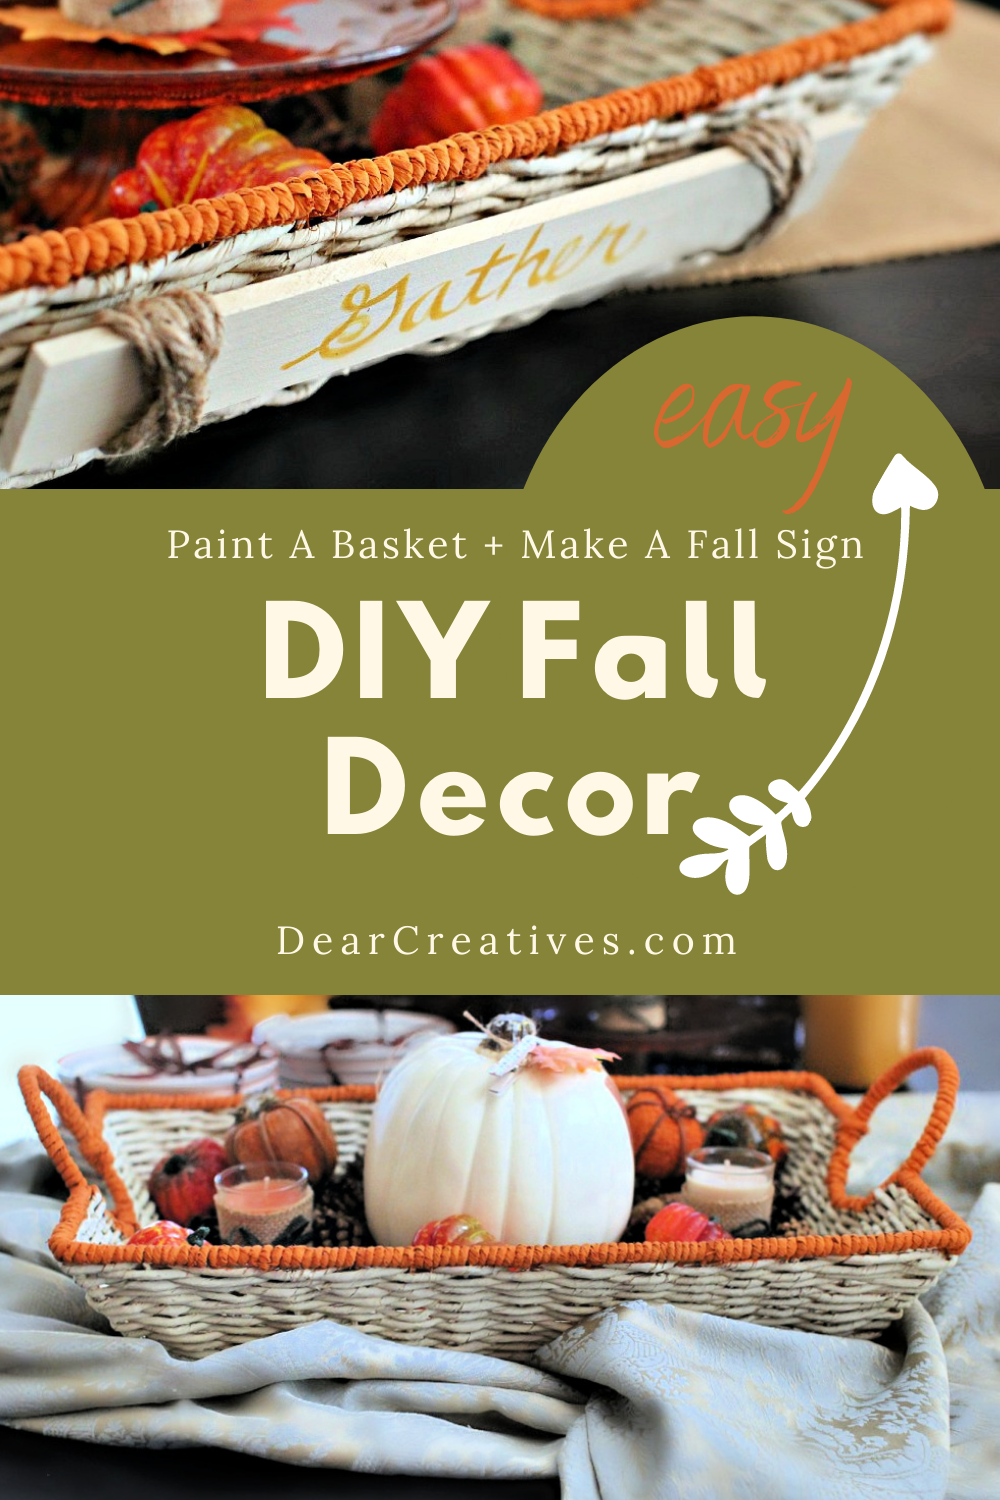 DIY Fall Decor – Paint And Decorate A Basket + DIY Sign